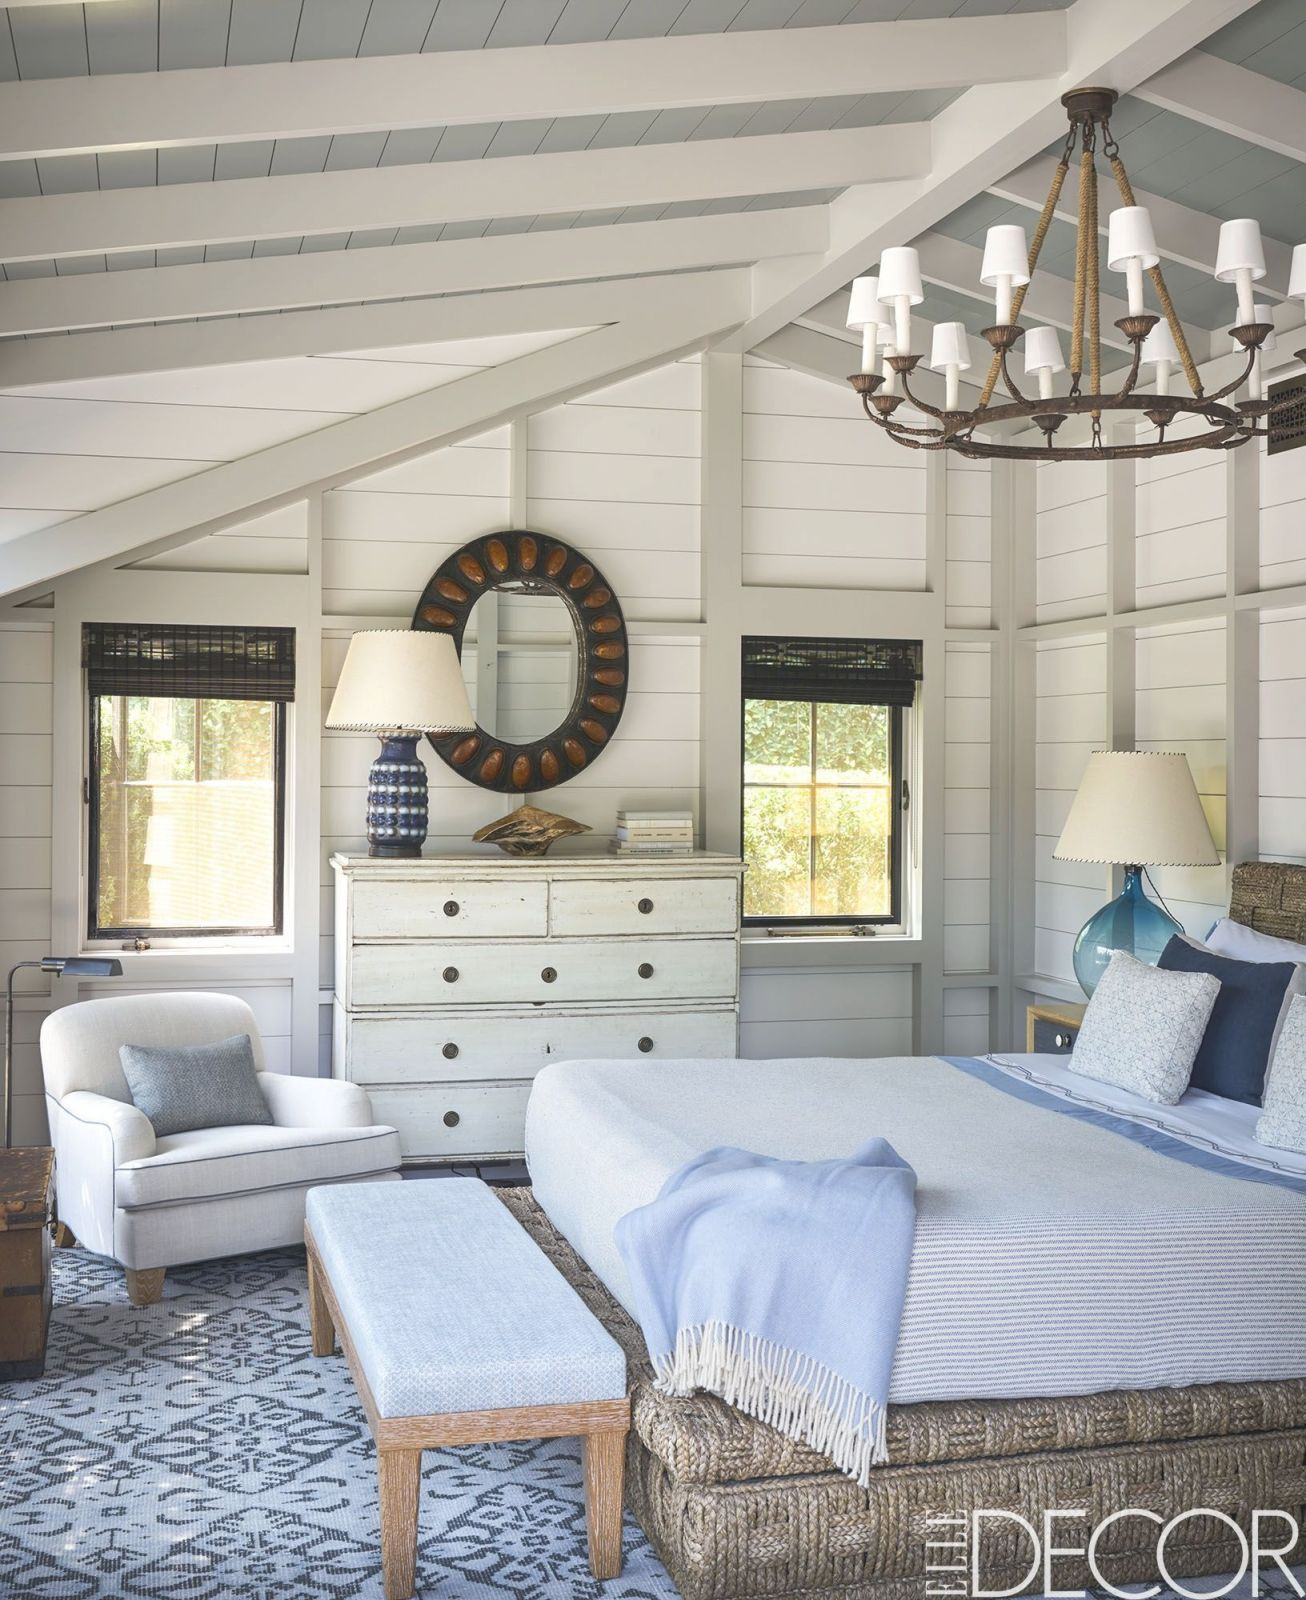 33 Coastal Home Decor Ideas – Rooms With Coastal Style within Luxury Seaside Bedroom Decorating Ideas